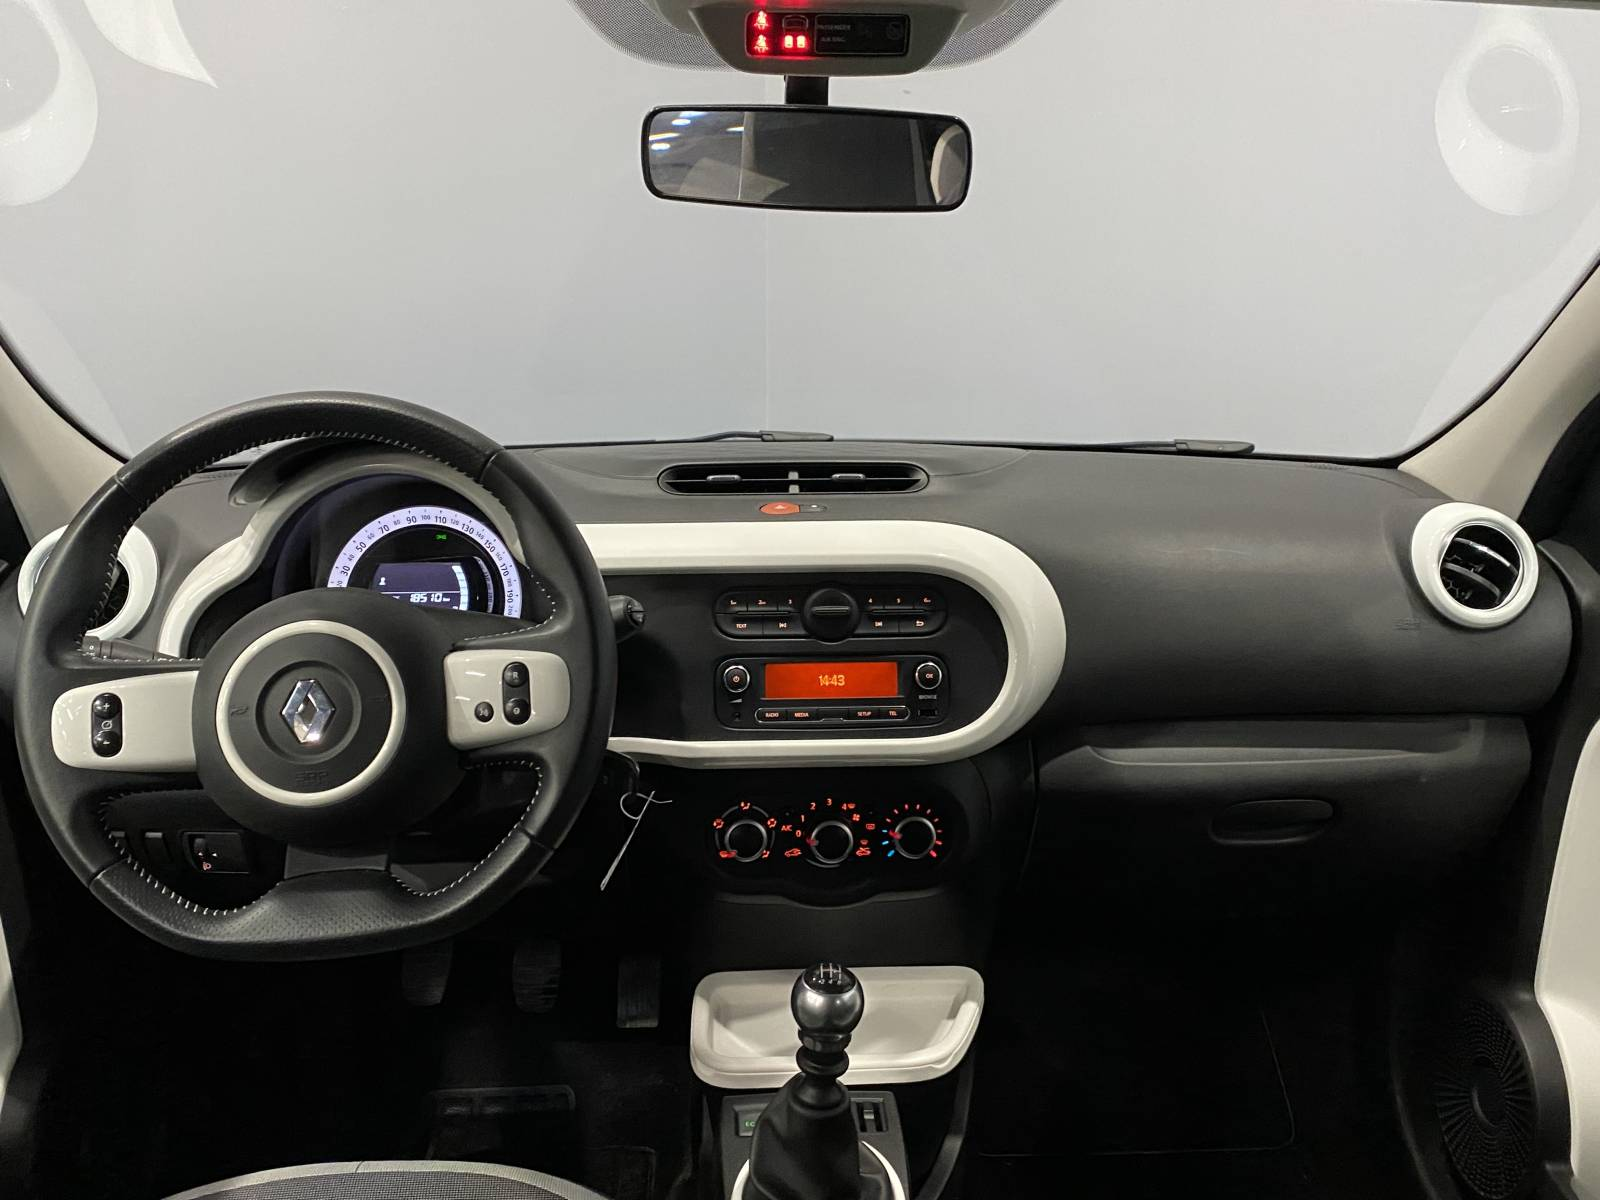 RENAULT Twingo III 0.9 TCe 90 Energy E6C - véhicule d'occasion - Site Internet Faurie - Renault - Faurie Auto Limoges - 87000 - Limoges - 9